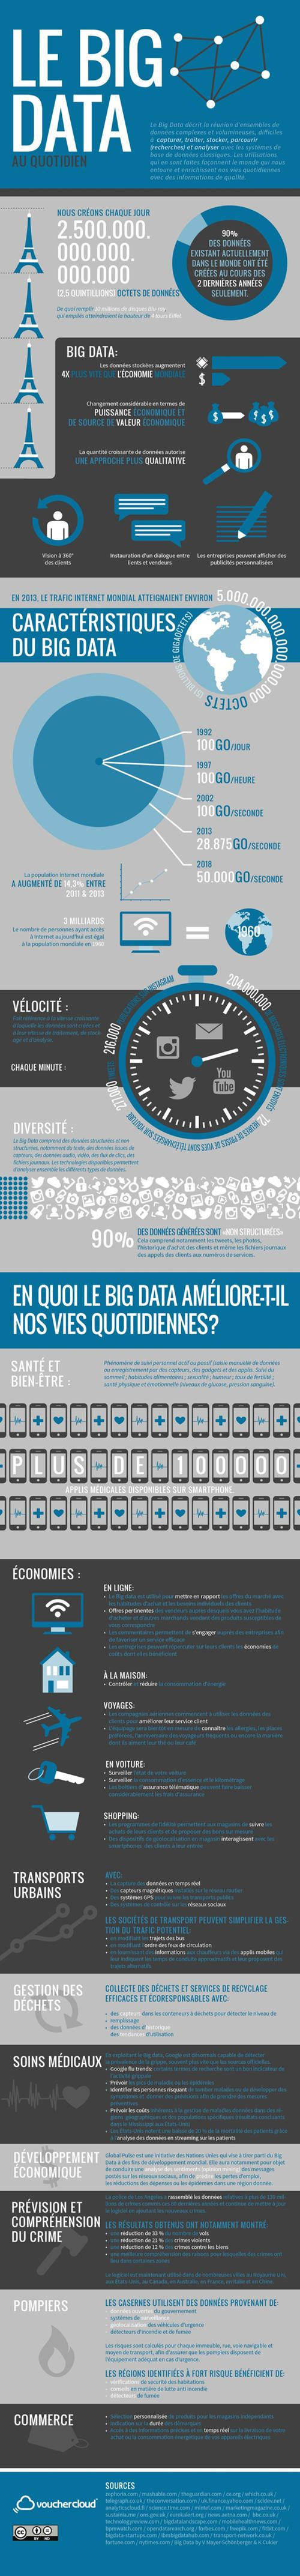 Le Big Data, une expression parfois difficile à cerner. En une infographie, voici un tour d'horizon du Big Data et ses applications concrètes. Le Big data